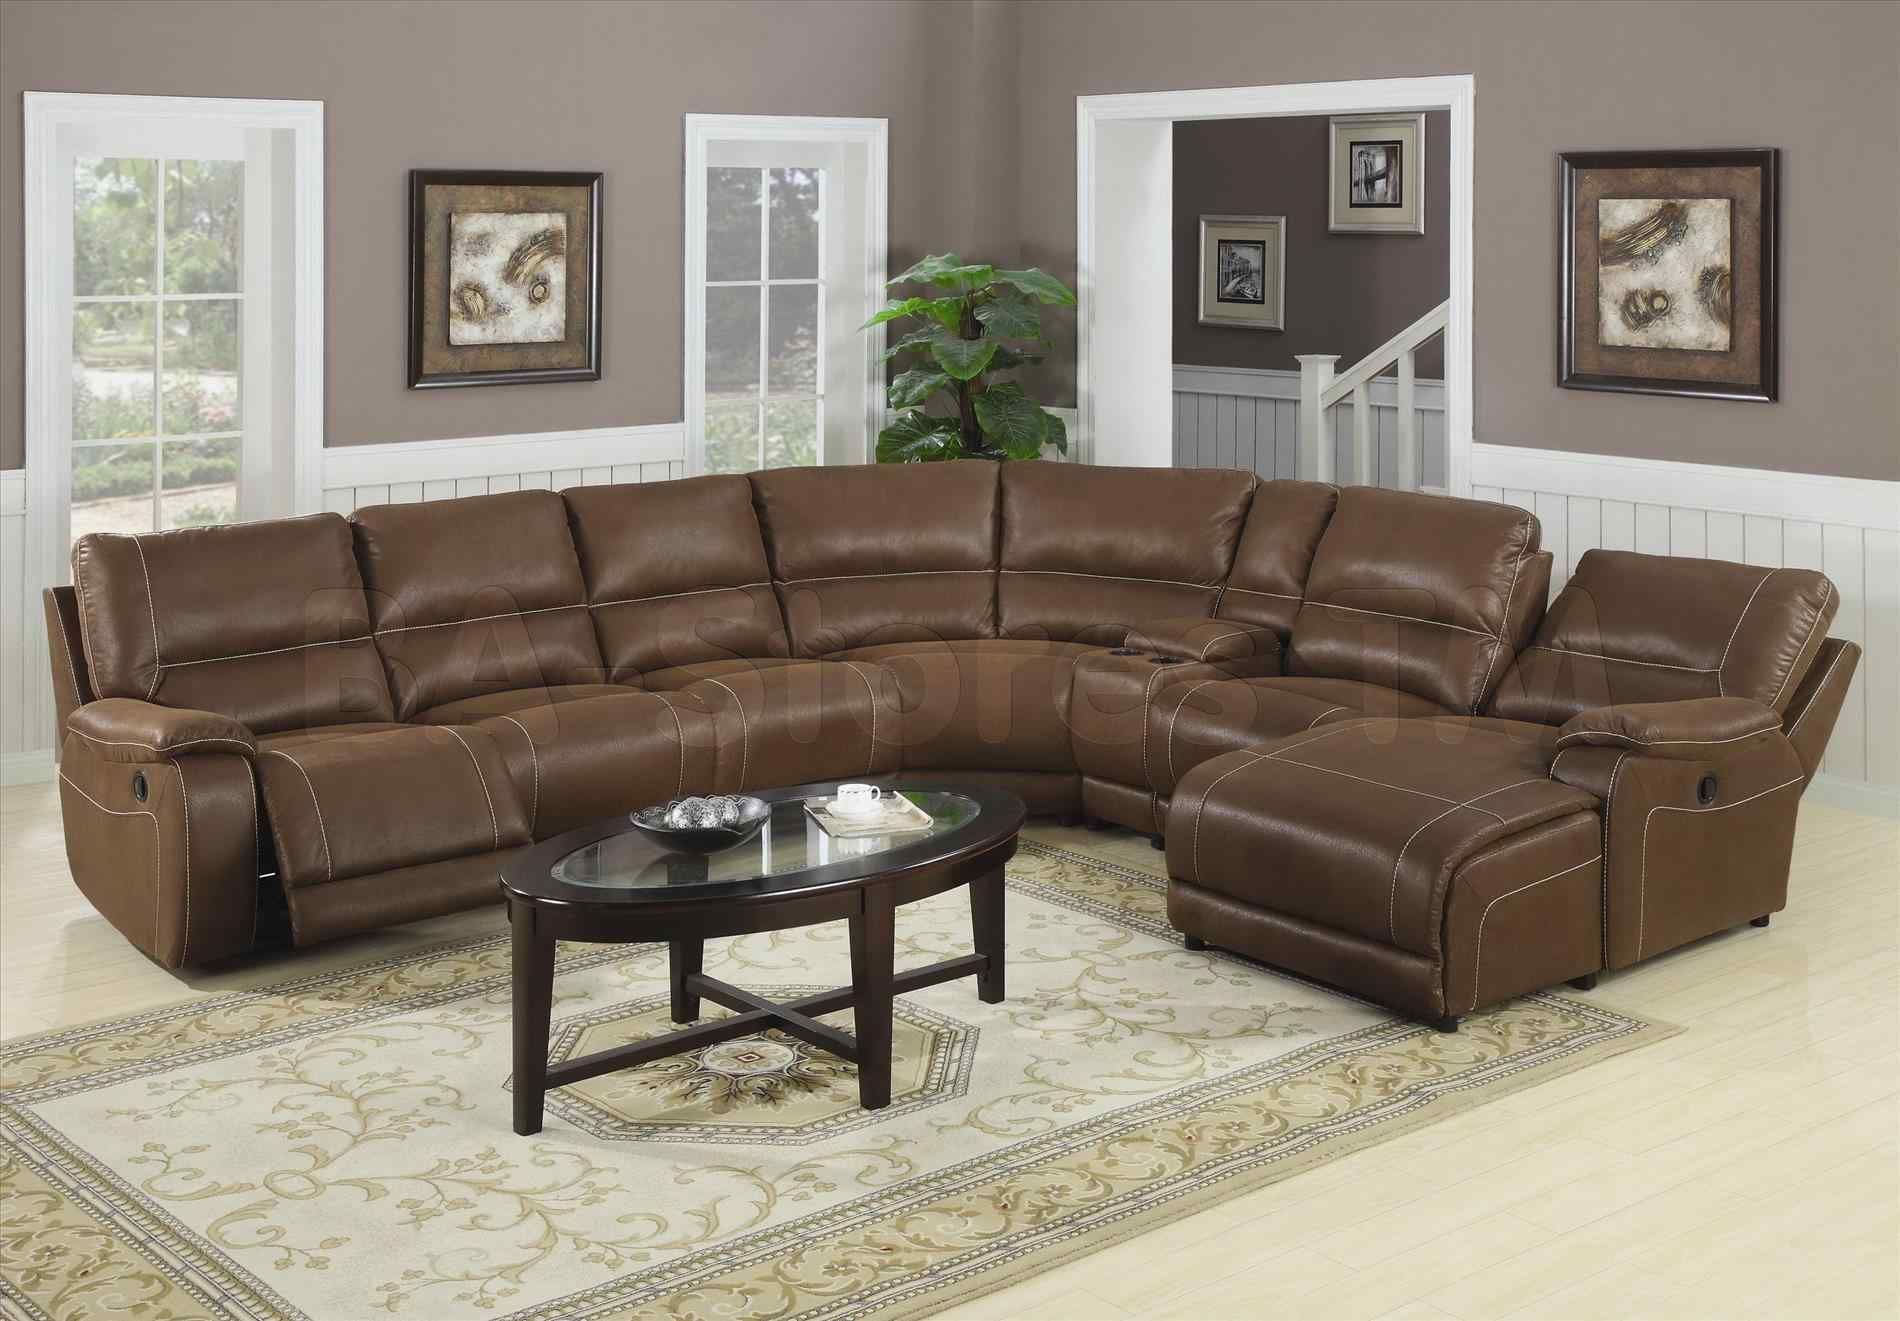 Furniture Discount Sectional Sofas For Sale Sears Sofa Couch Tricks With Recliners Sectional Sofa With Recliner Large Sectional Sofa Relaxed Living Room Decor